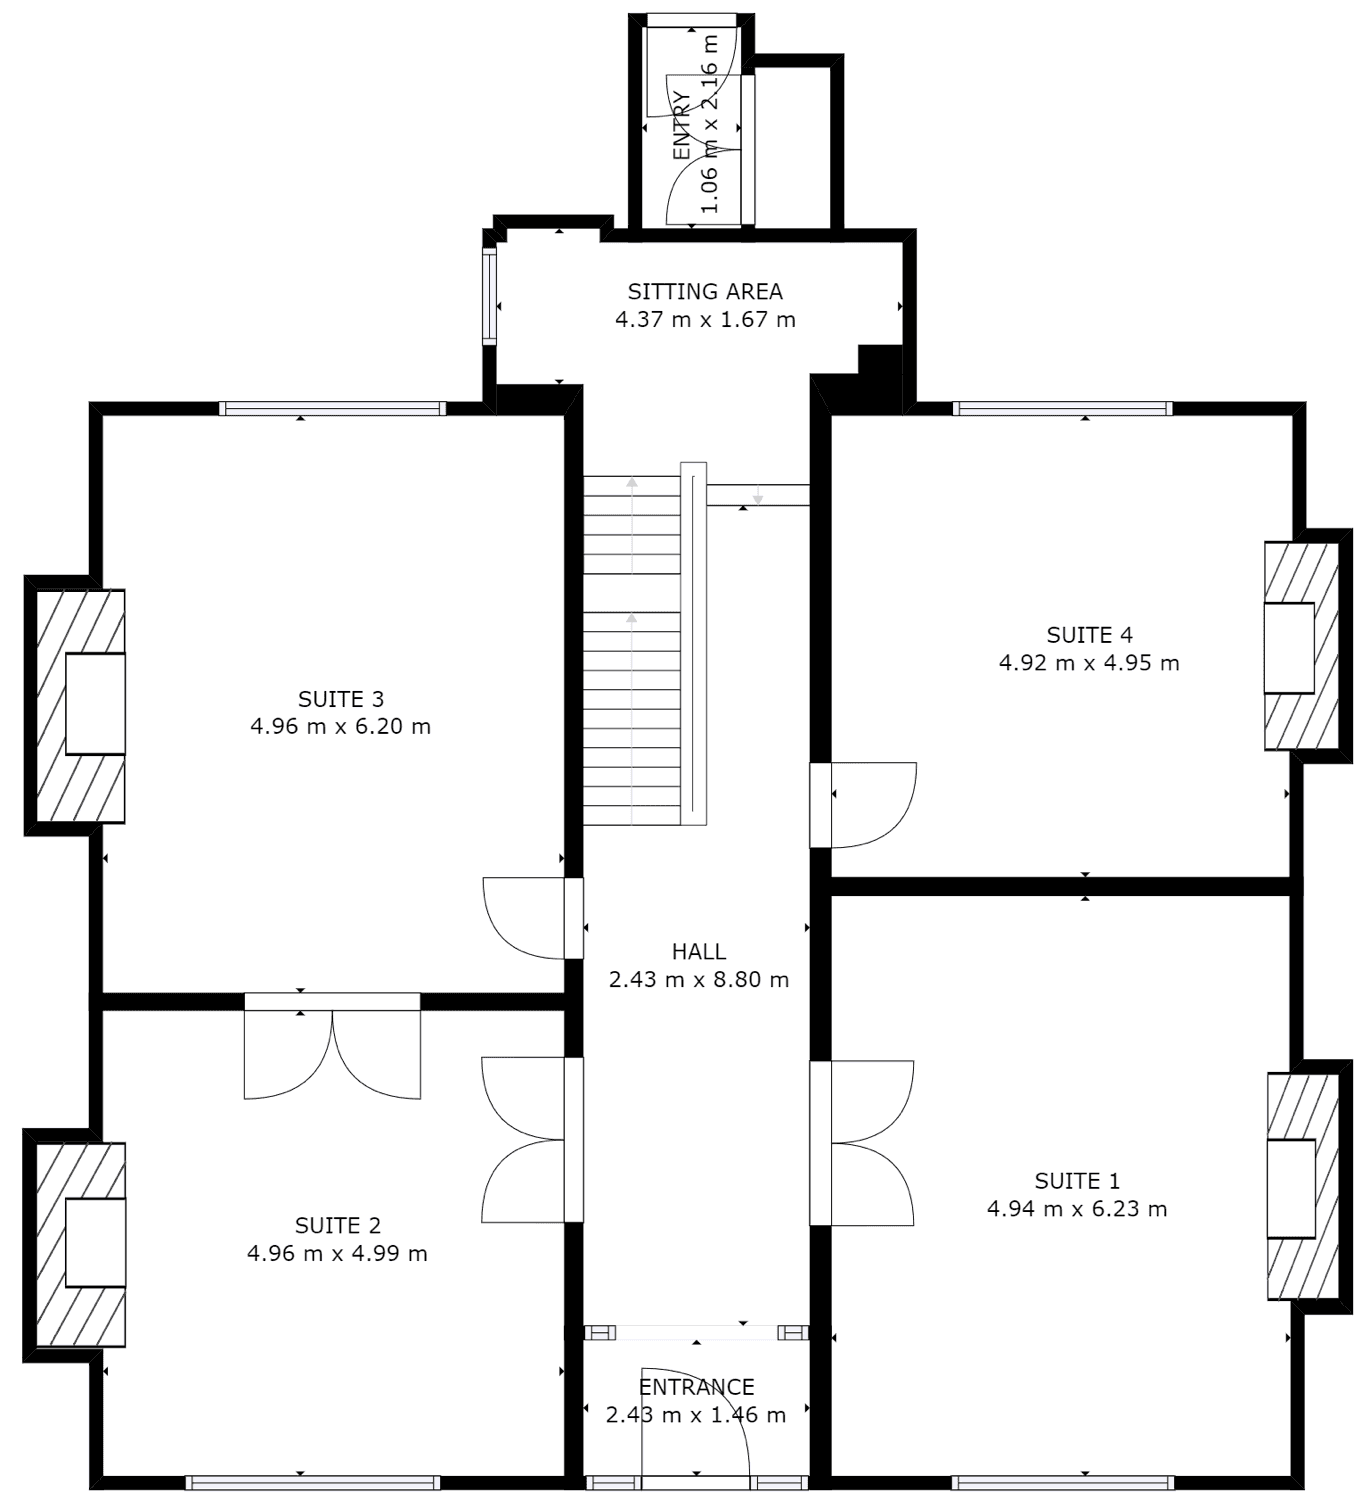 Ground floor plan of private office suites and layout at Wokingham business centre, Markham House